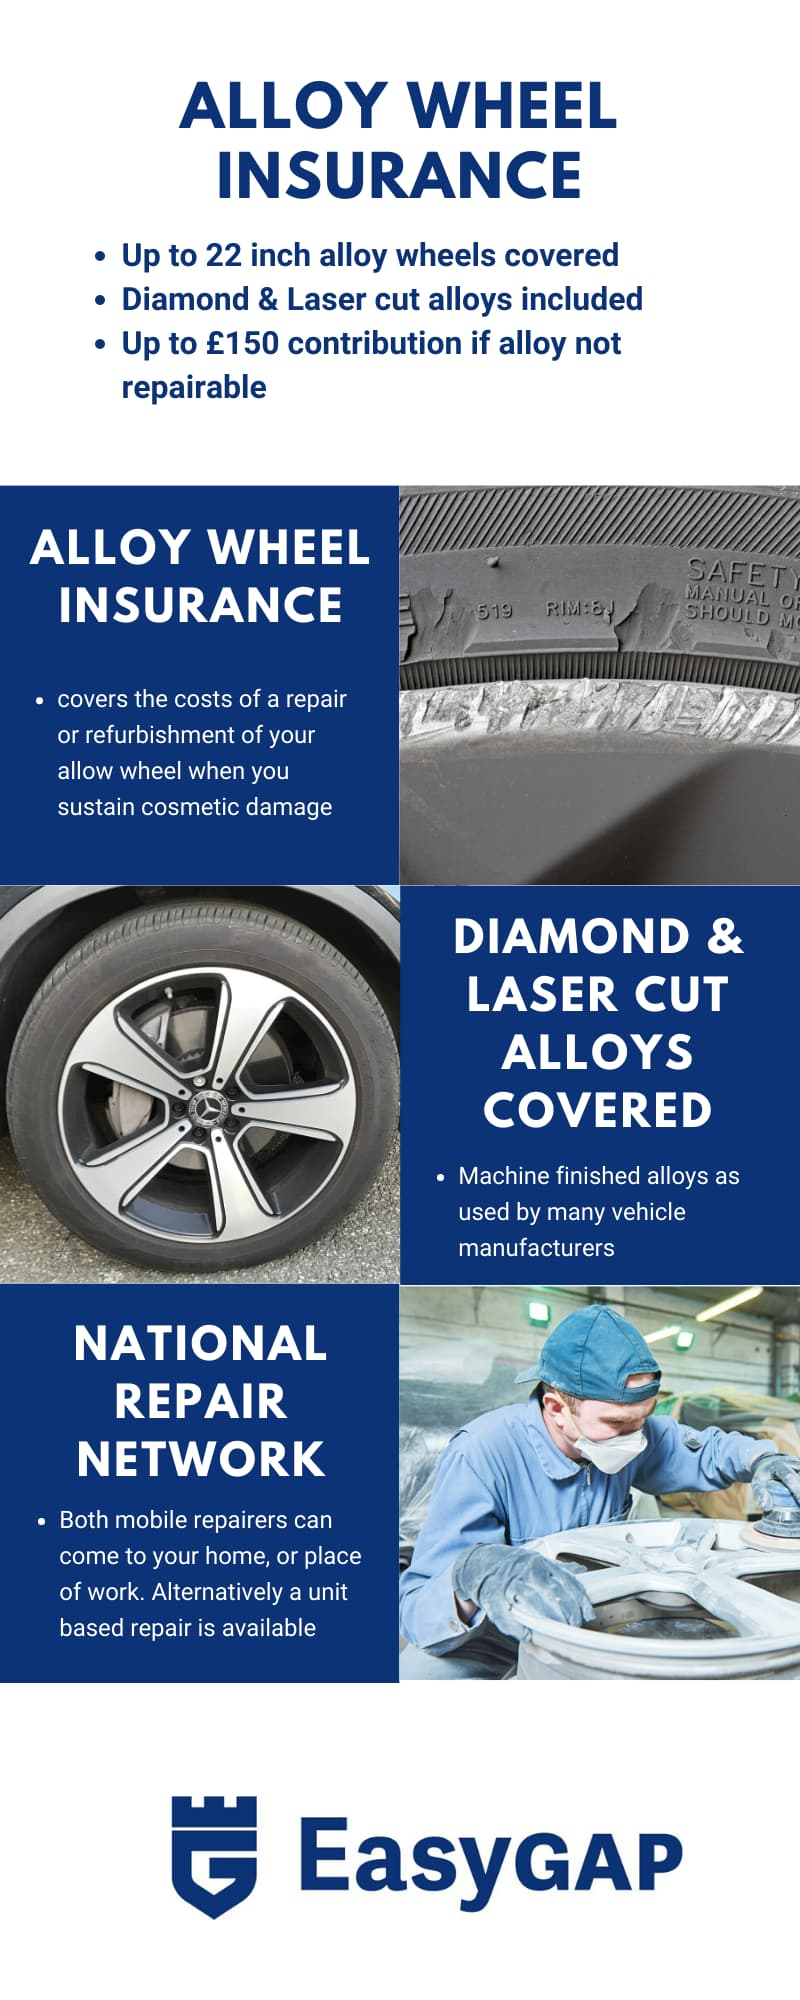 alloy wheel insurance - smartcare by easygap